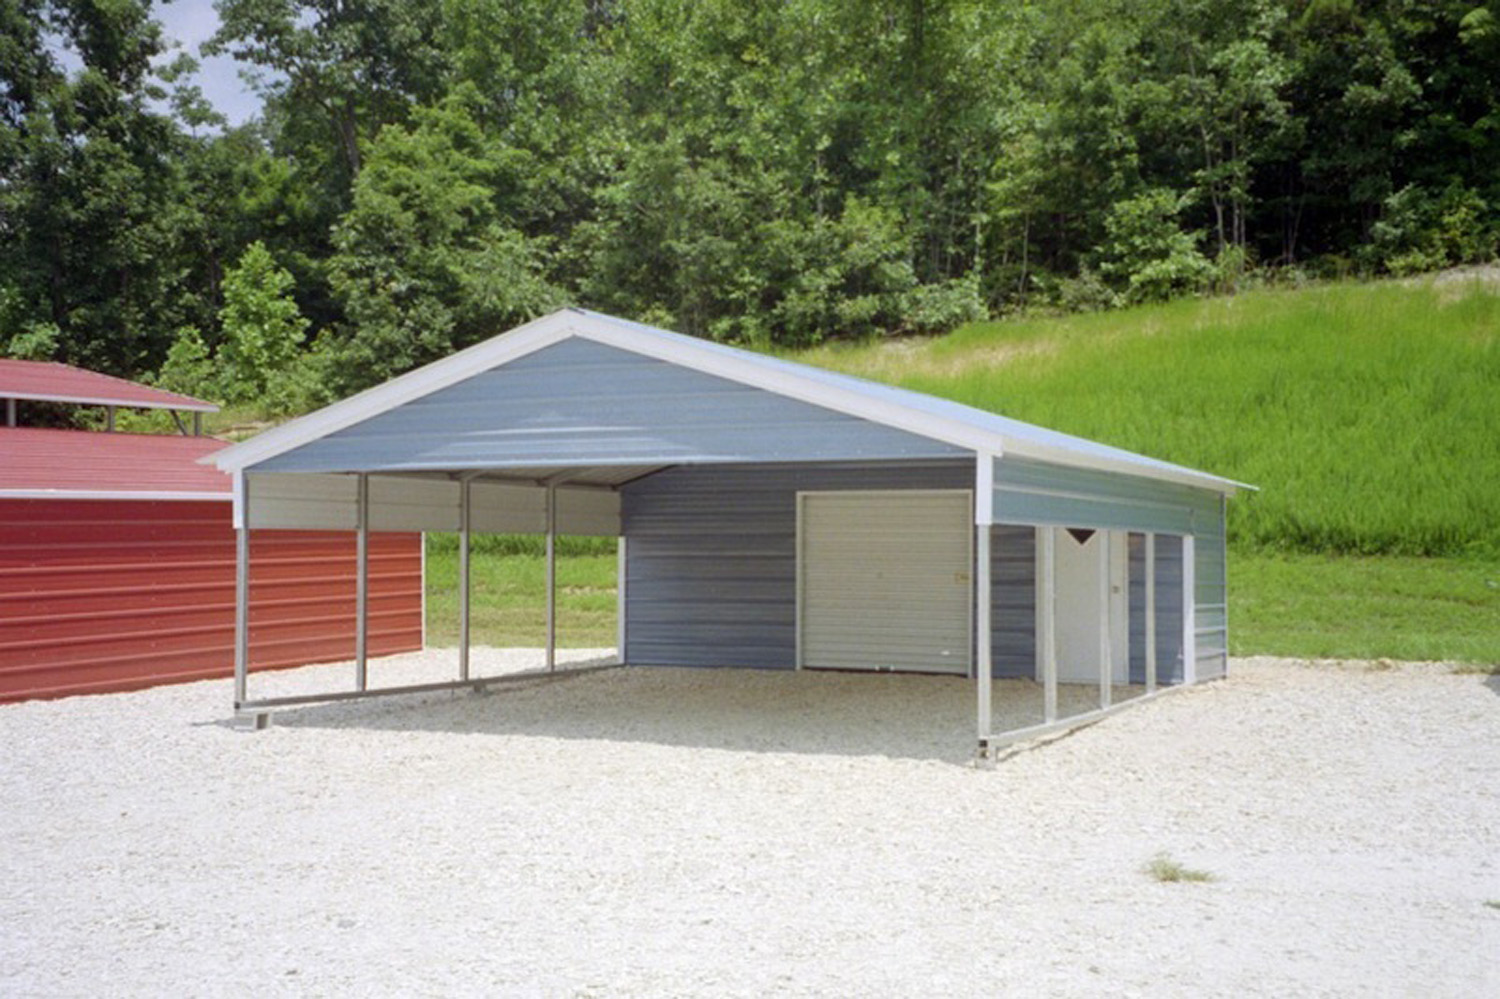 Steel carport kits metal carport kits 595 for Carport garages